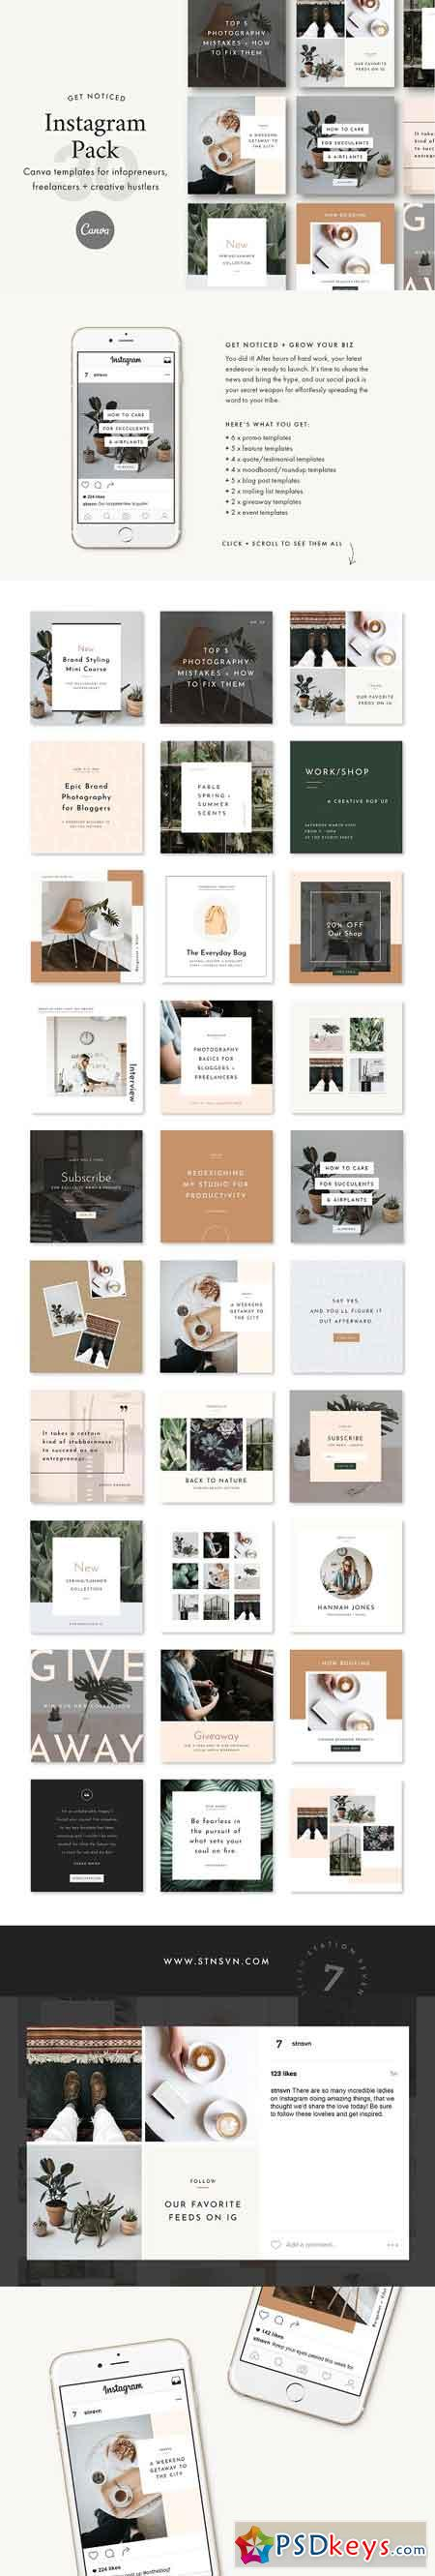 Instagram Canva Bundle 2476714